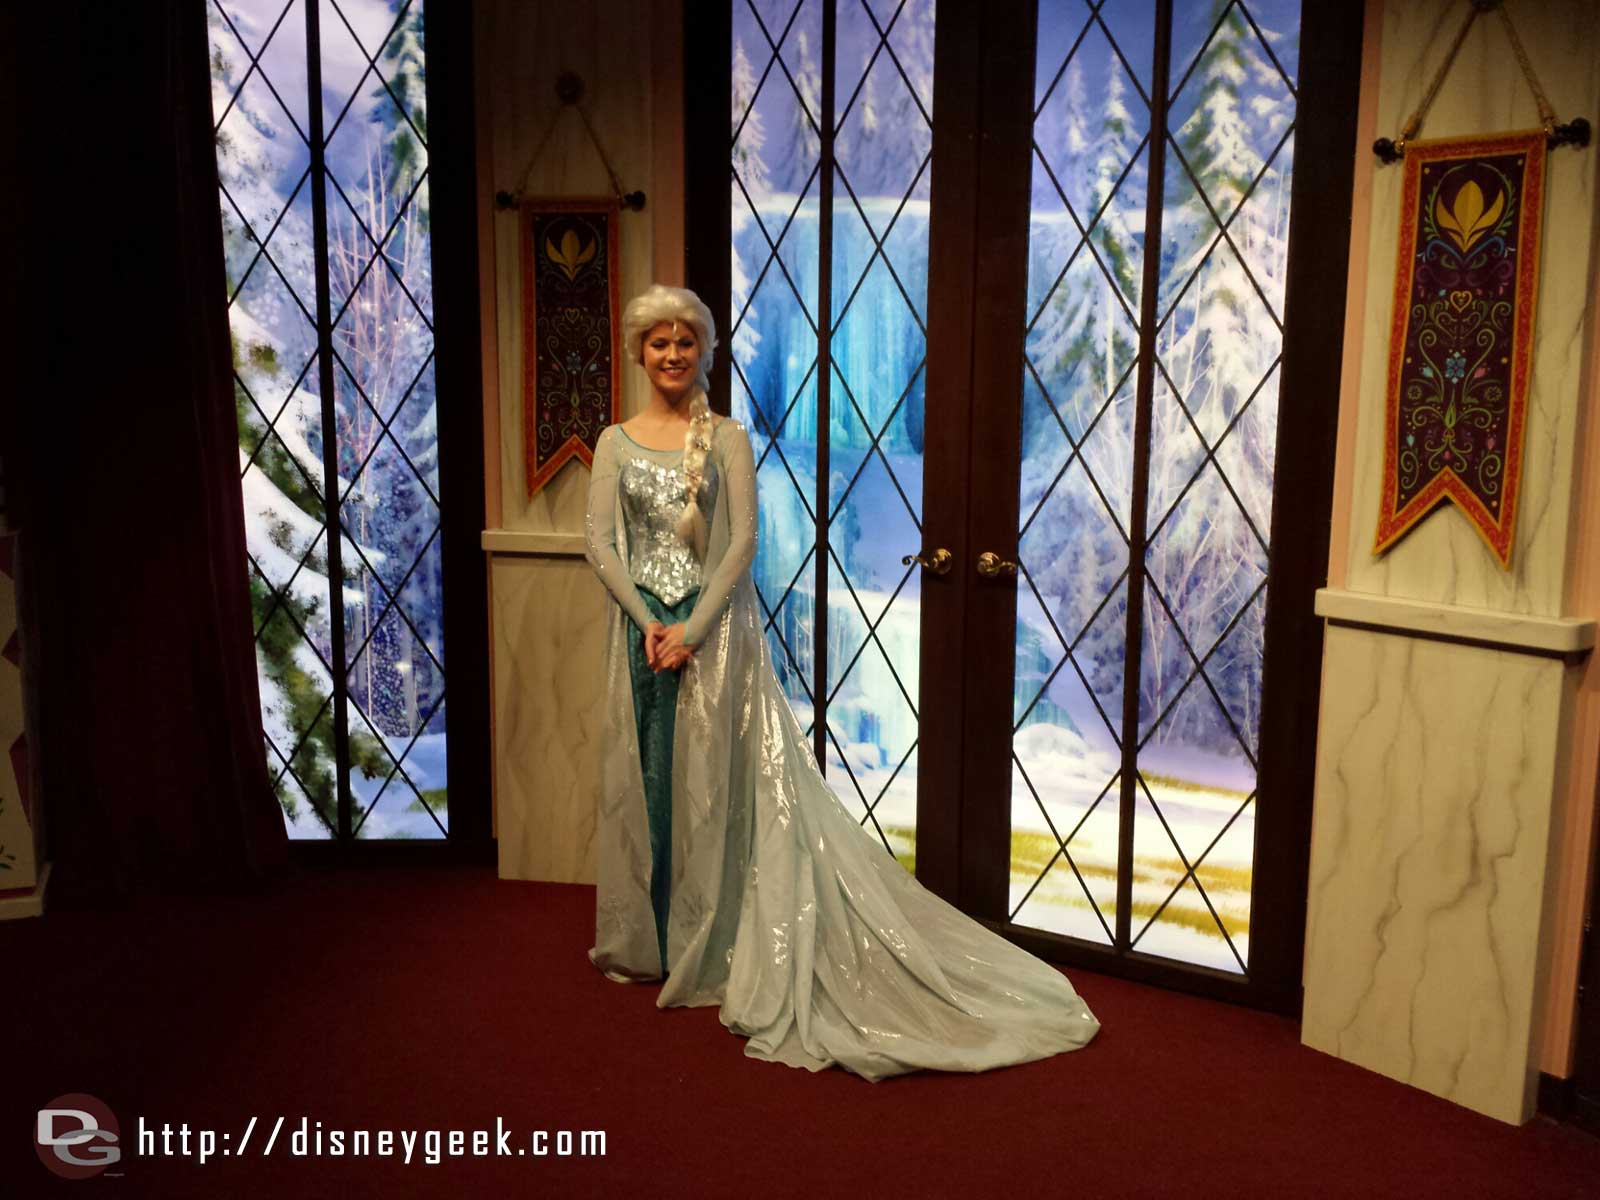 Met Elsa in the character close-up #FrozenFun